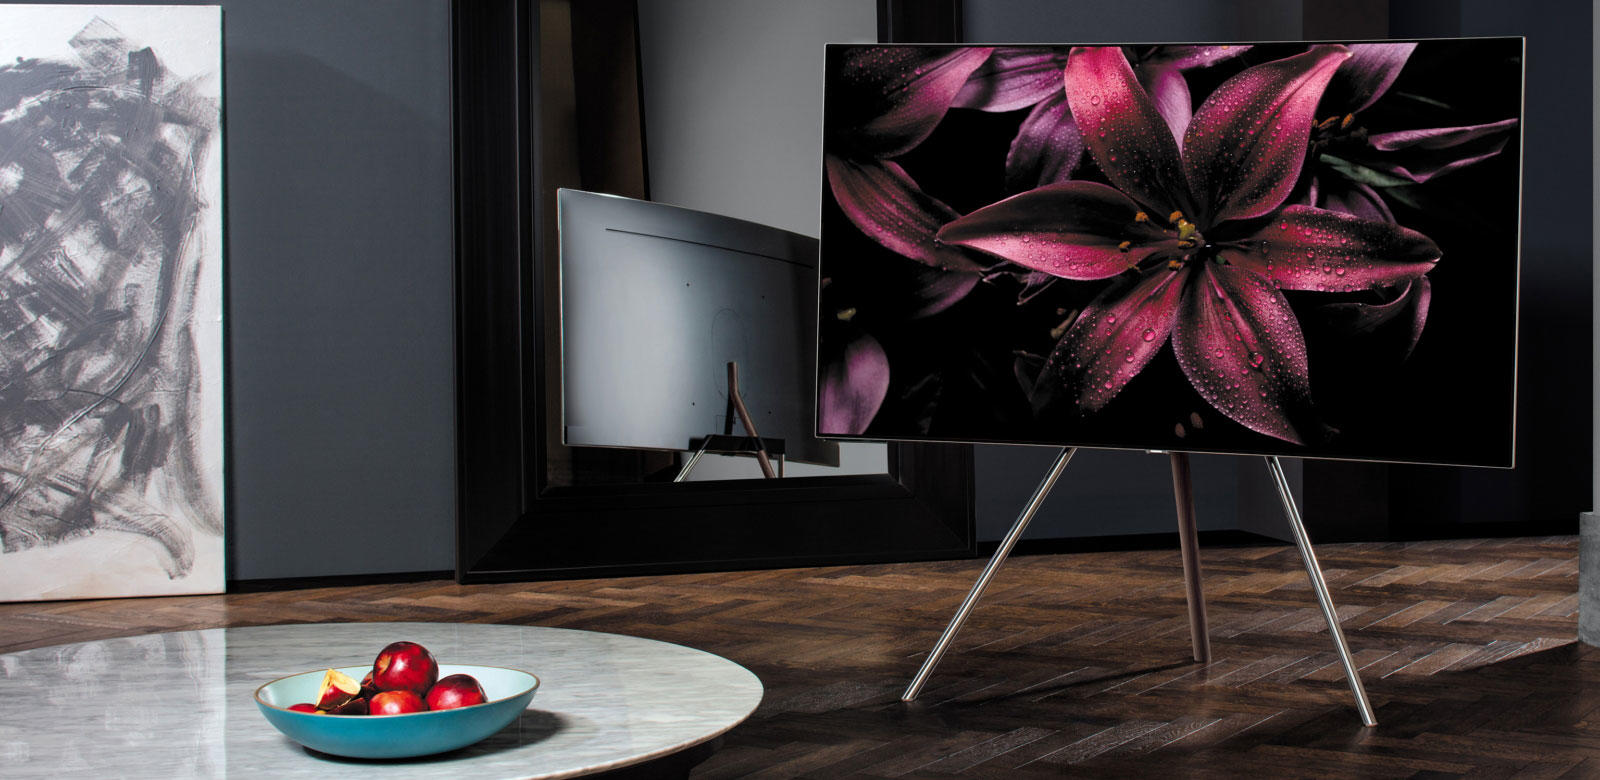 Samsung QLED V's OLED - What's the Difference